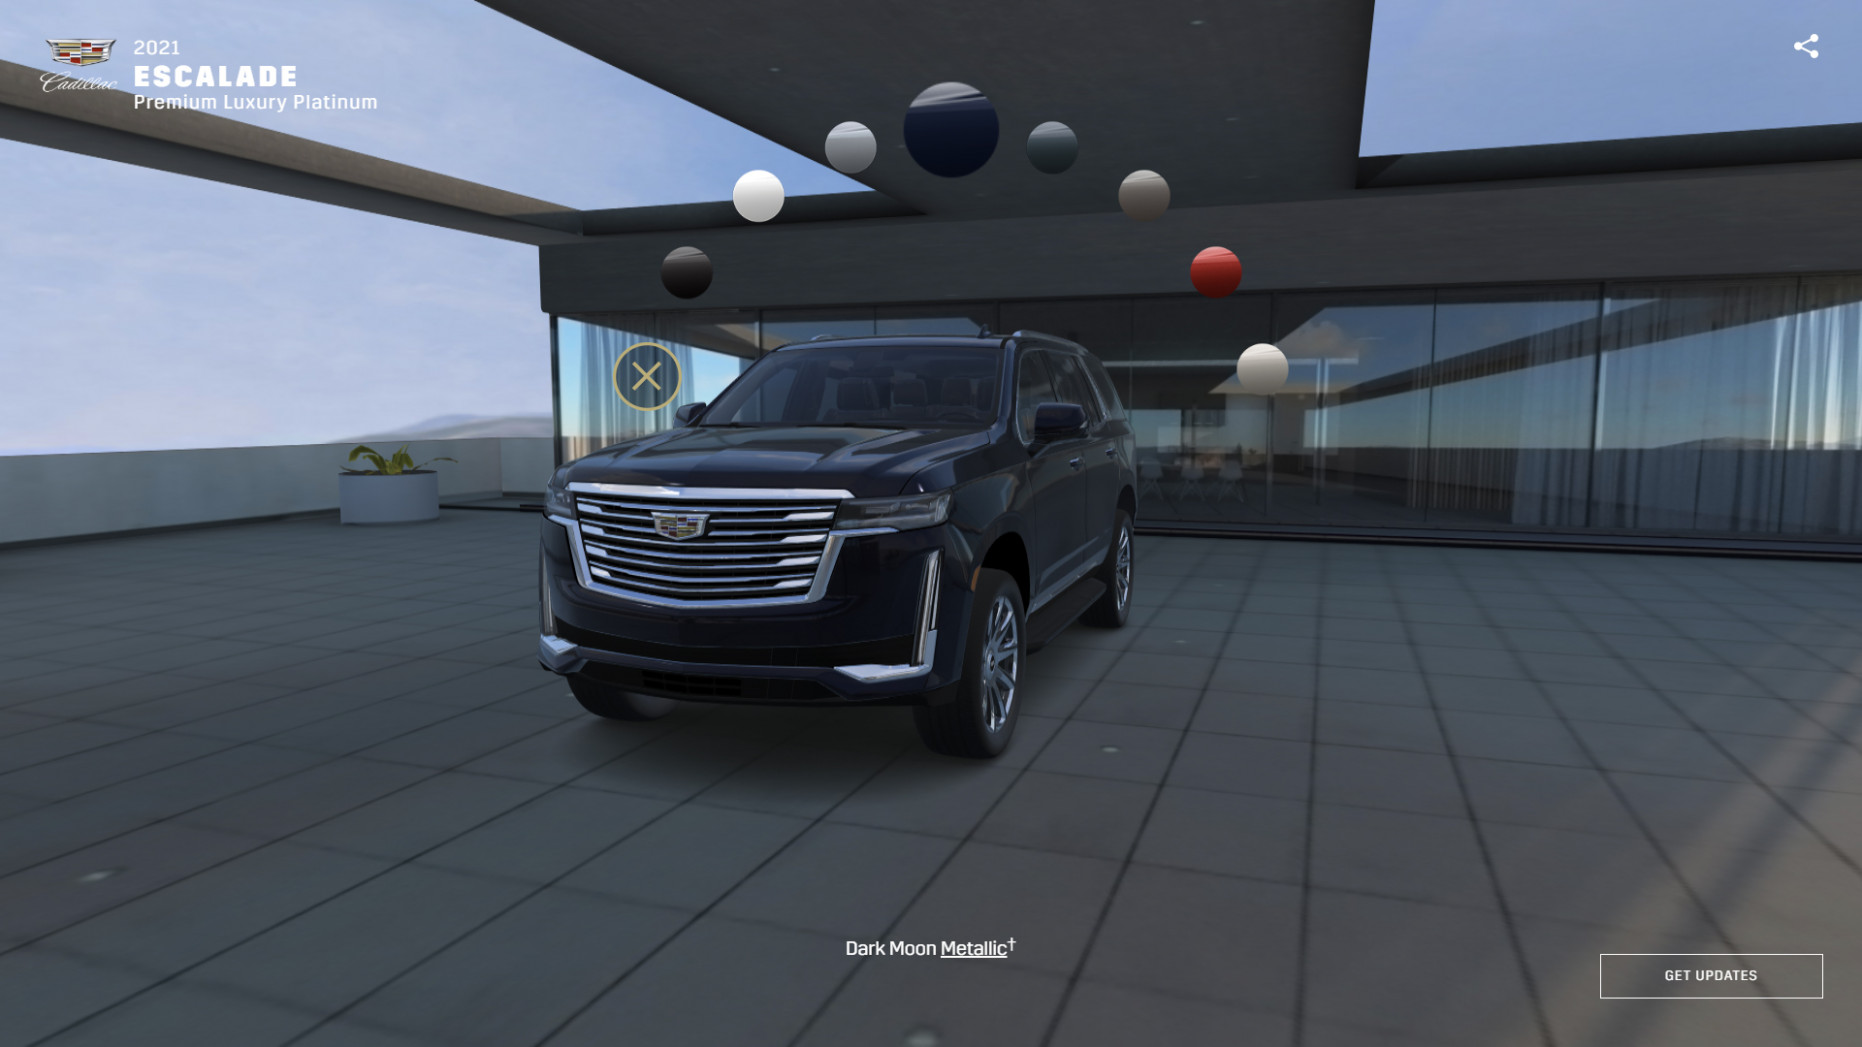 6 Cadillac Escalade Visualizer Lets You Build a Dream SUV - The ...